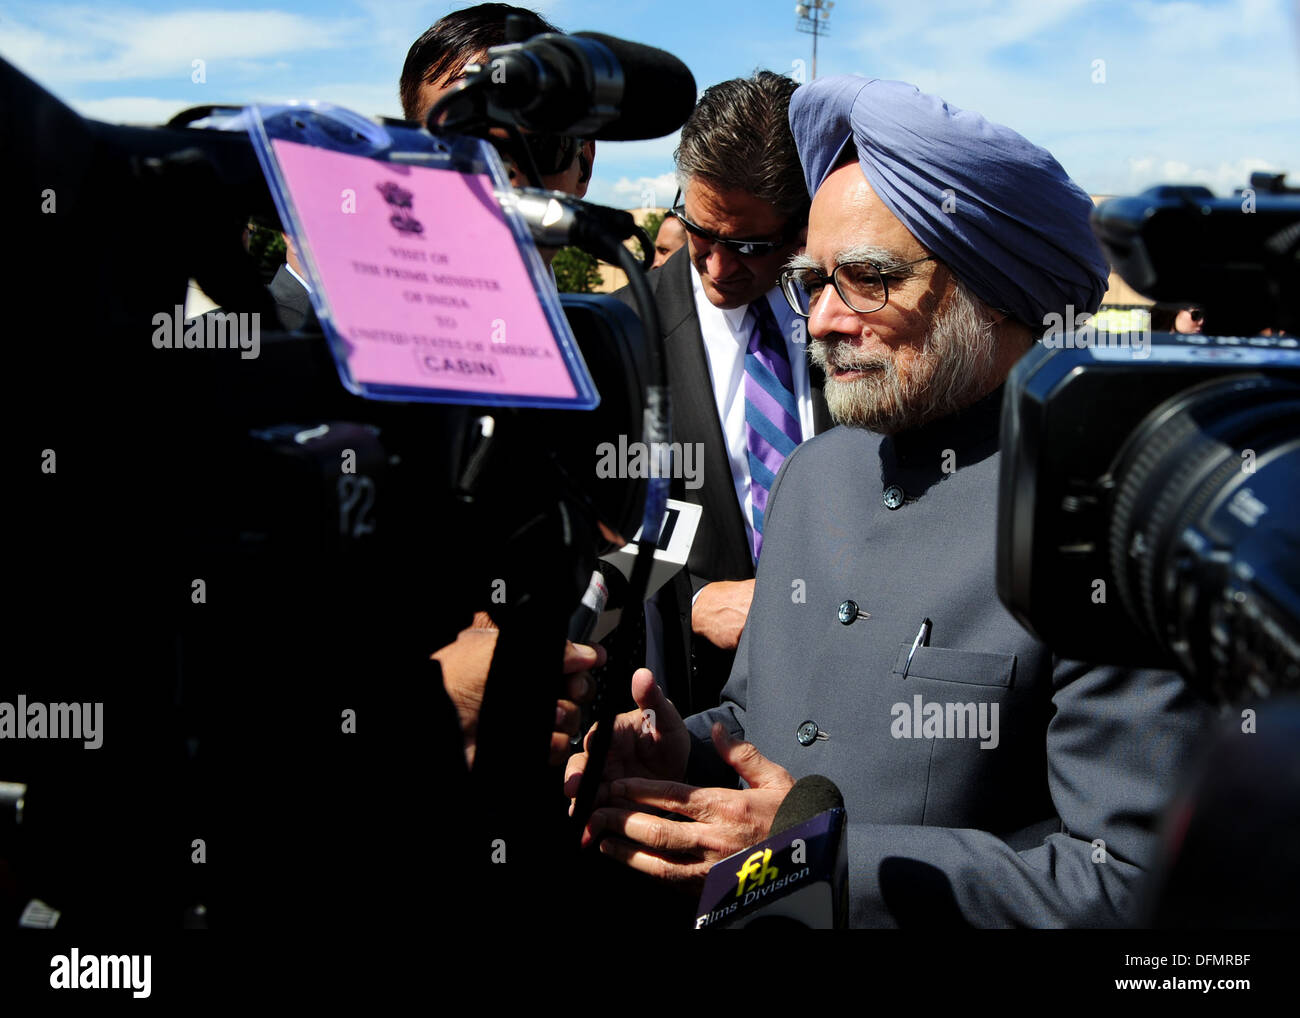 Prime of India Dr. Manmohan Singh speaks to media after arriving to Joint Base Andrews, Md., Sept. 26, 2013. The Prime Minister - Stock Image